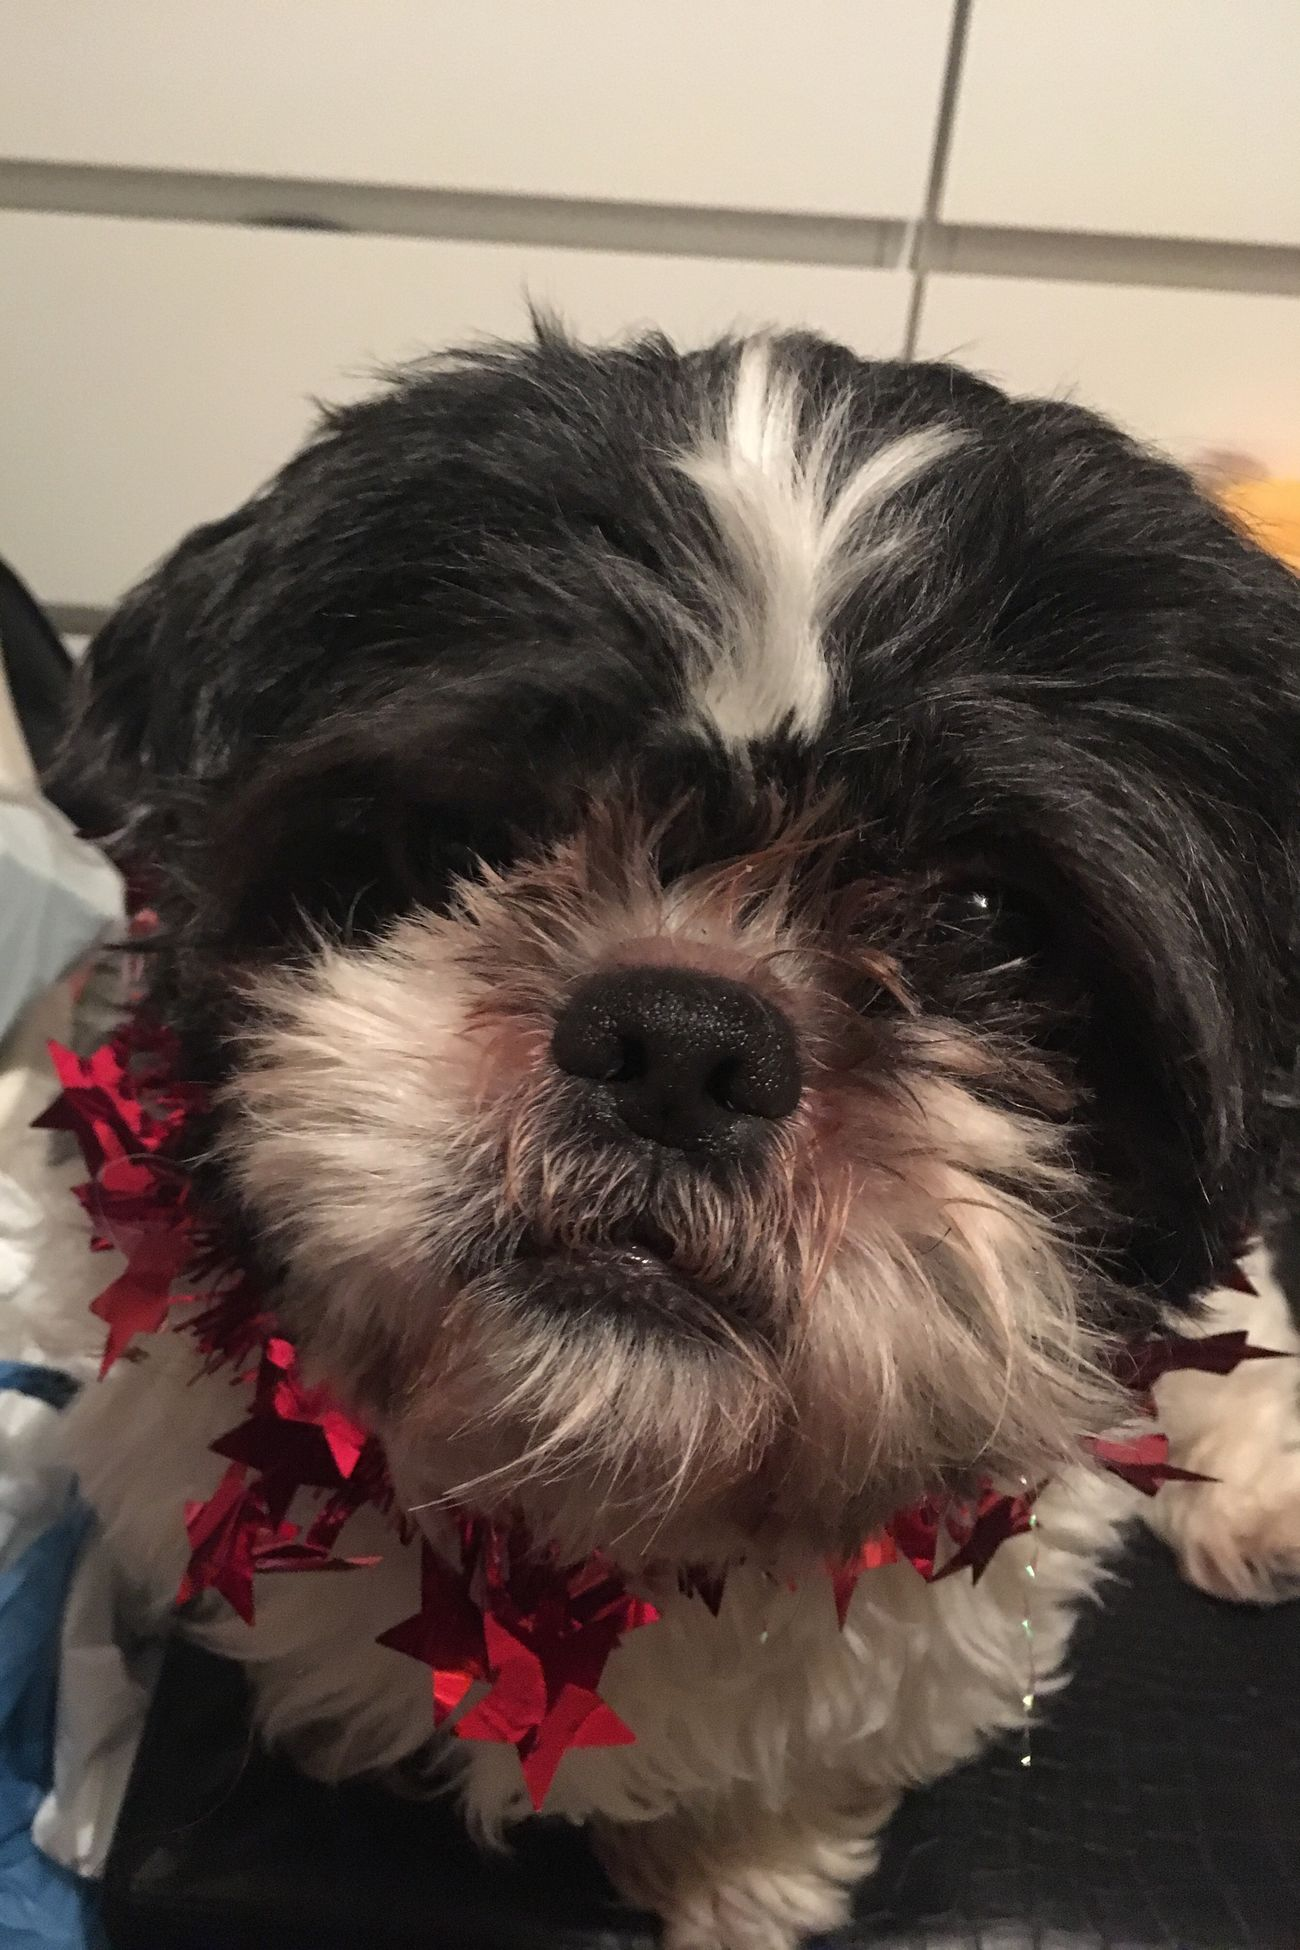 Domestic Animals Pets Dog Animal Themes One Animal Mammal Animal Hair Home Interior Indoors  No People Close-up Day Shih Tzu Shihtzu Tinsel  Christmas